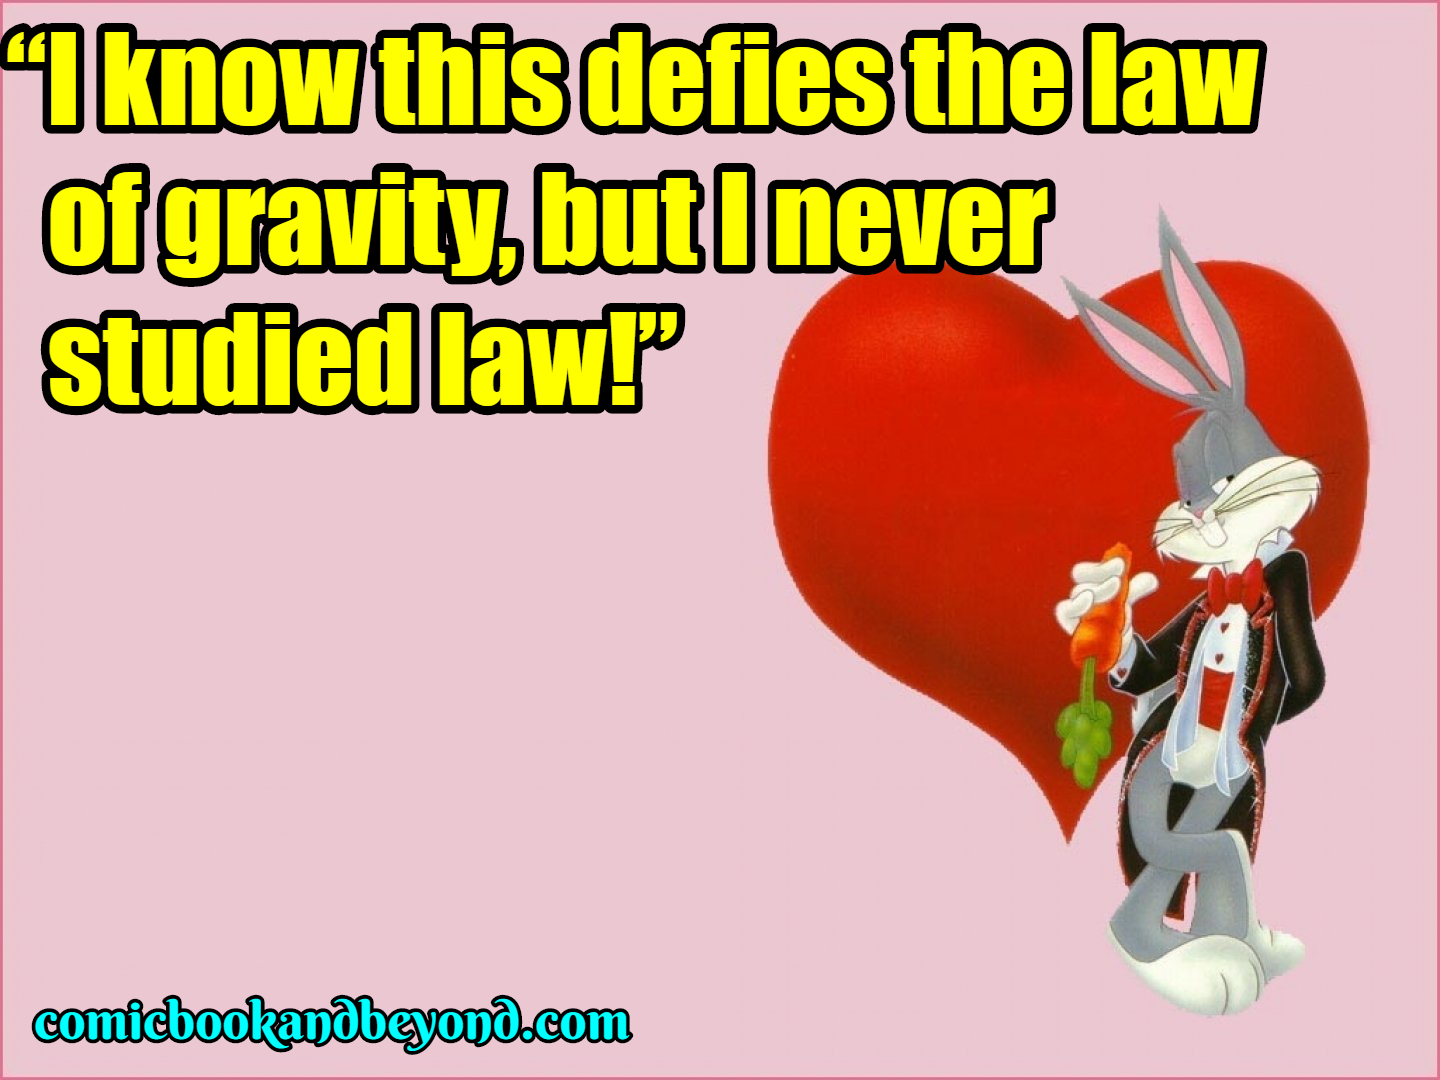 Bugs Bunny saying